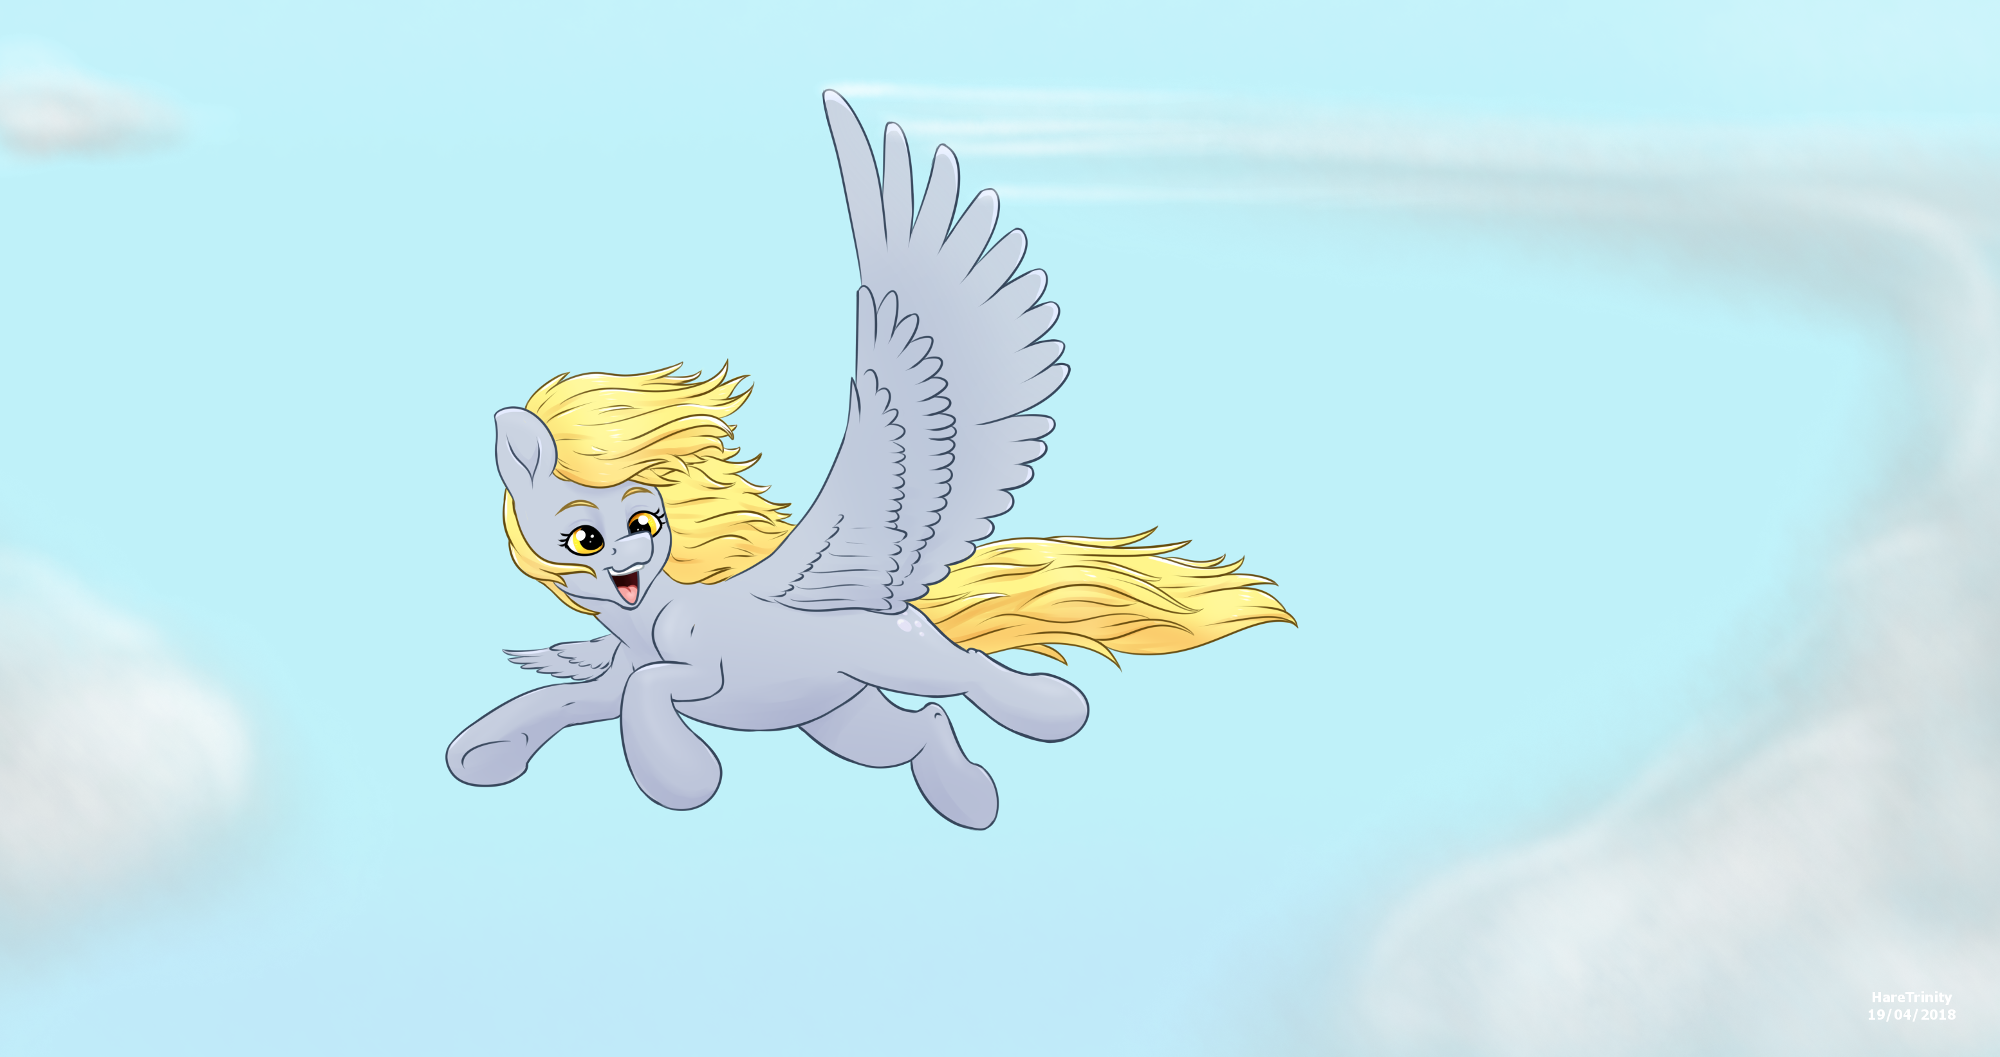 Flight of the Derp